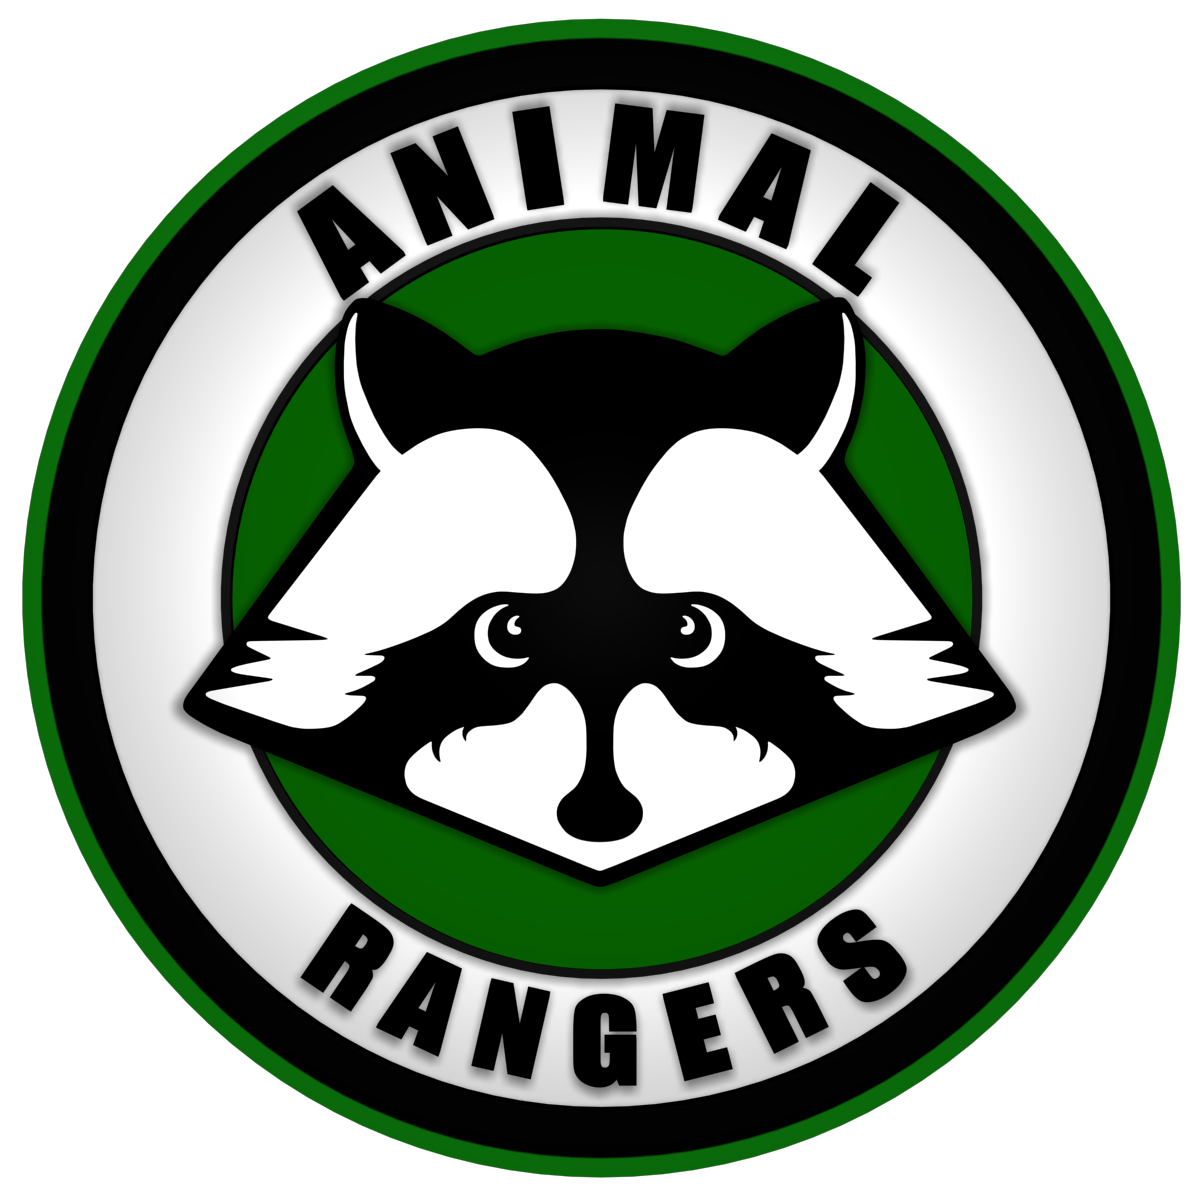 Animal Rangers Inc